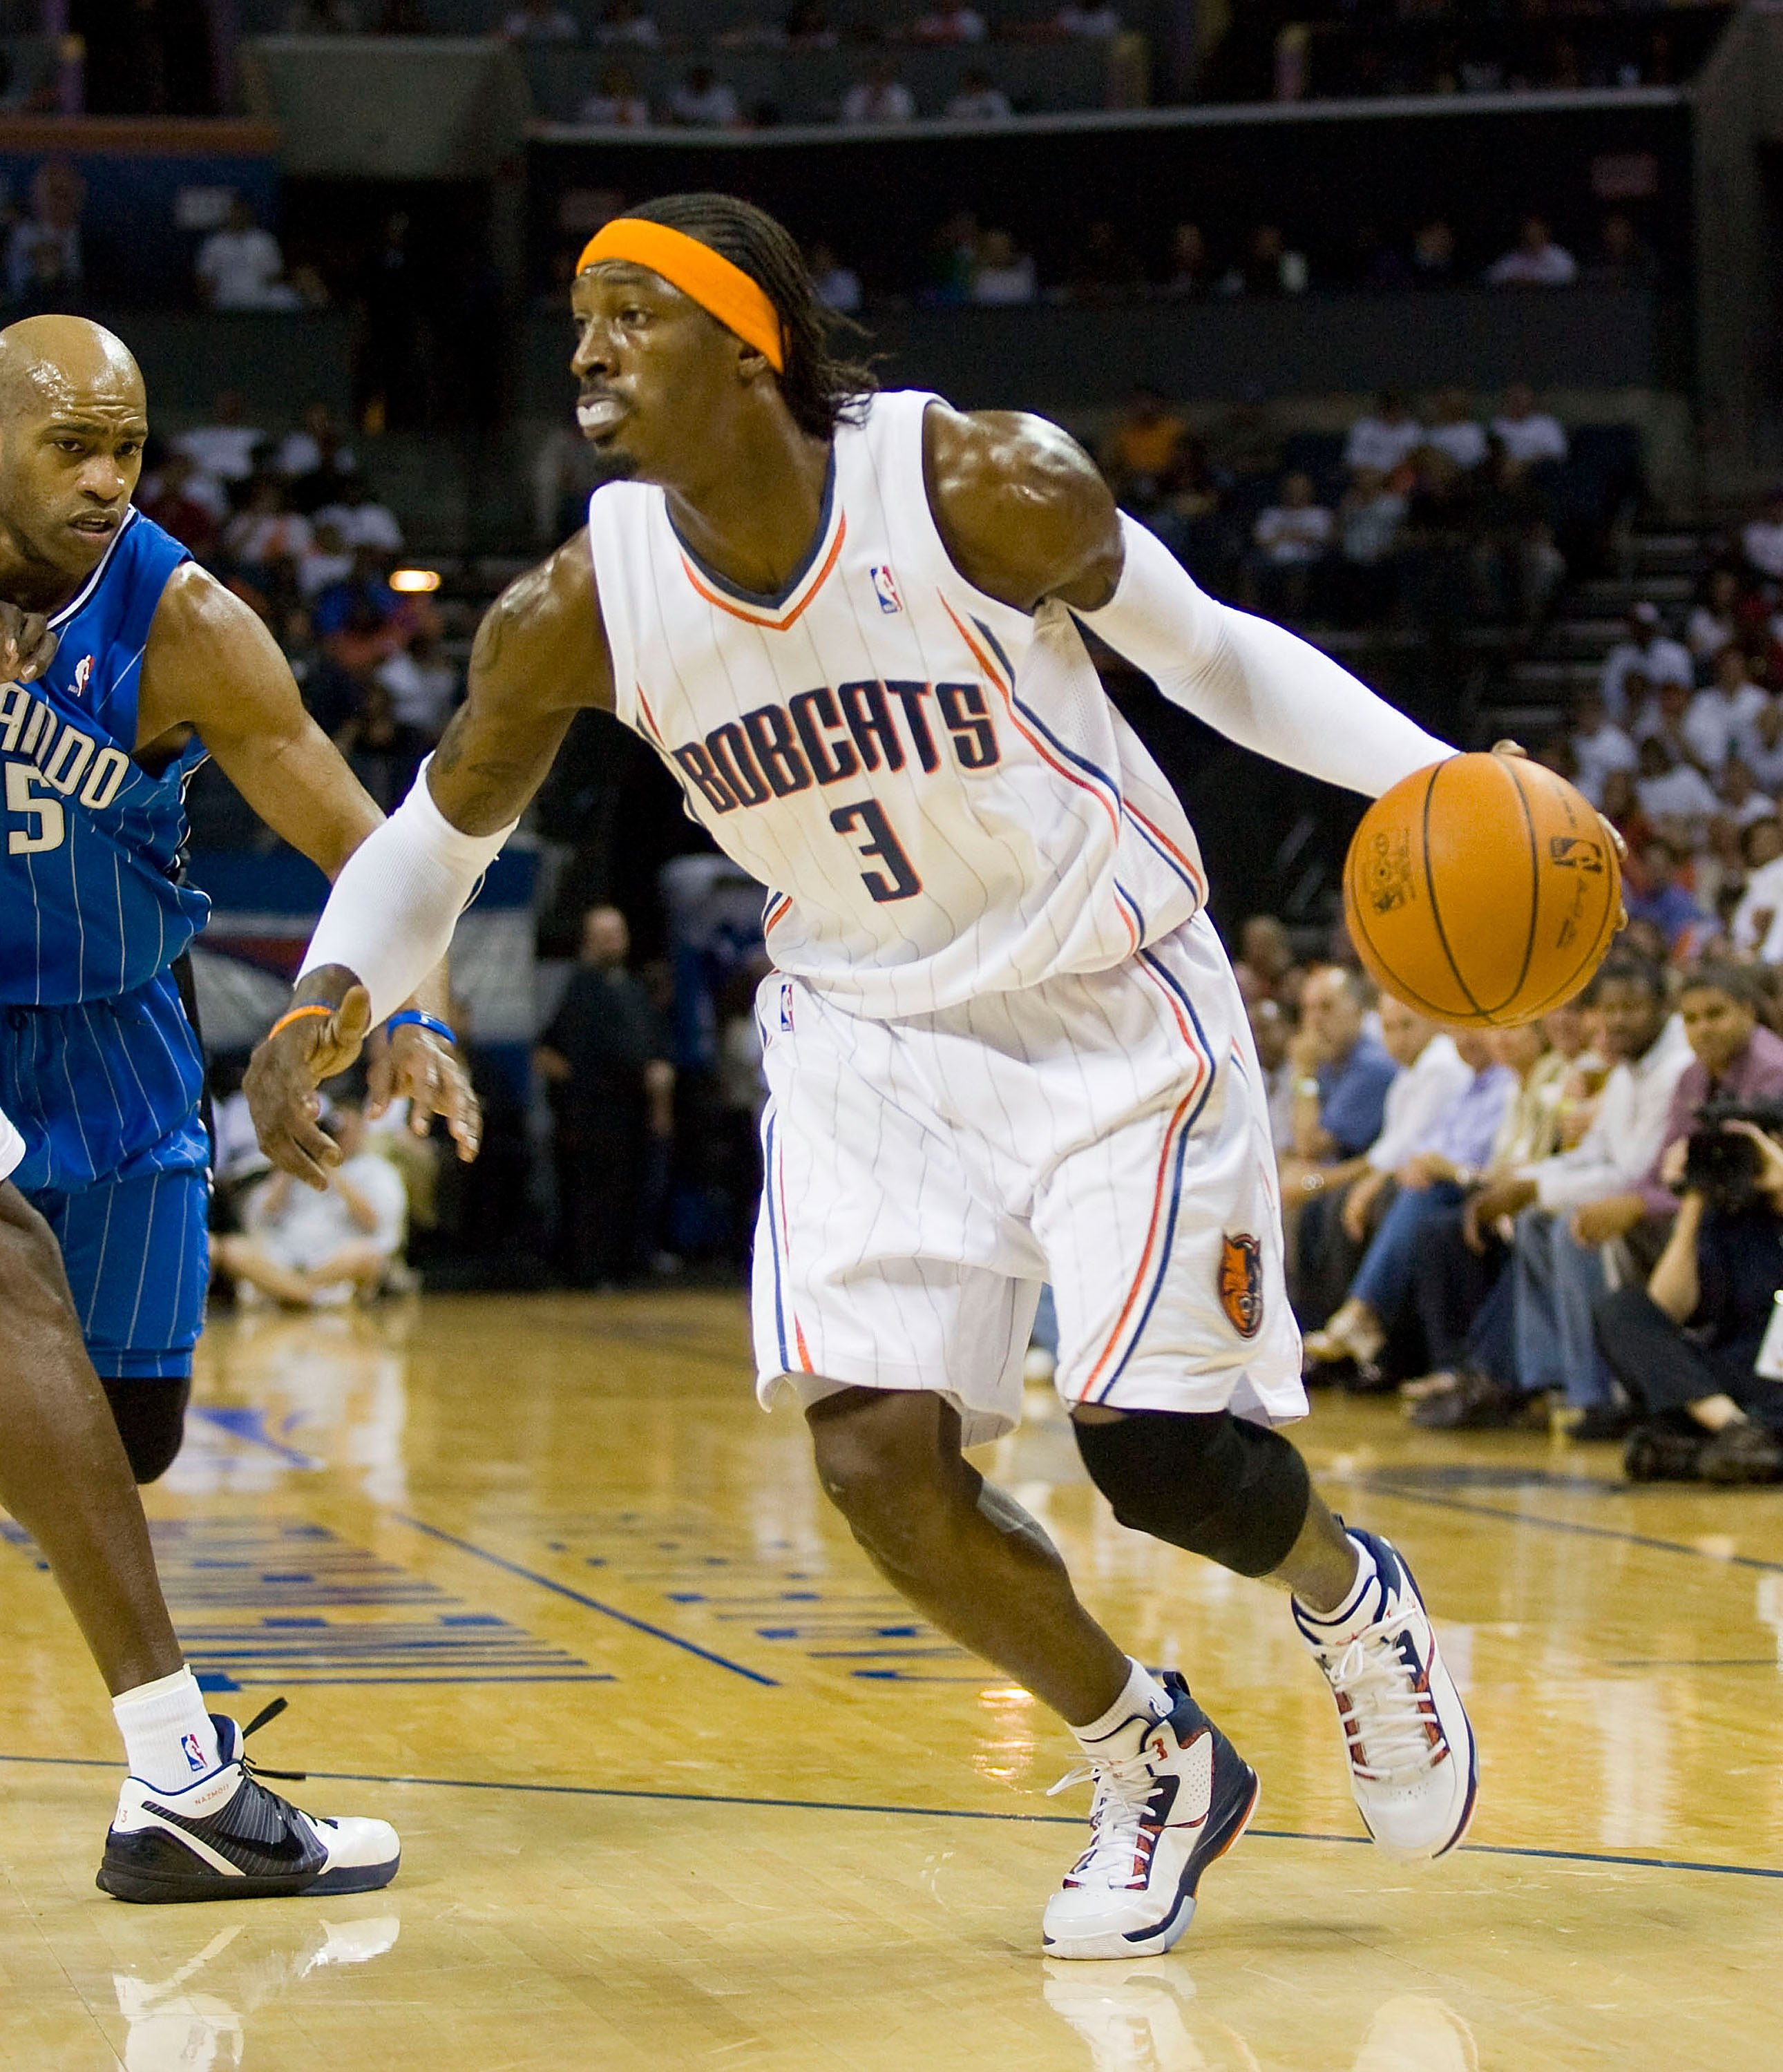 CHARLOTTE, NC - APRIL 26: Gerald Wallace #3 of the Charlotte Bobcats dribbles away from Vince Carter #15 of the Orlando Magic at Time Warner Cable Arena on April 26, 2010 in Charlotte, North Carolina.  The Magic defeated the Bobcats 99-90 to complete the